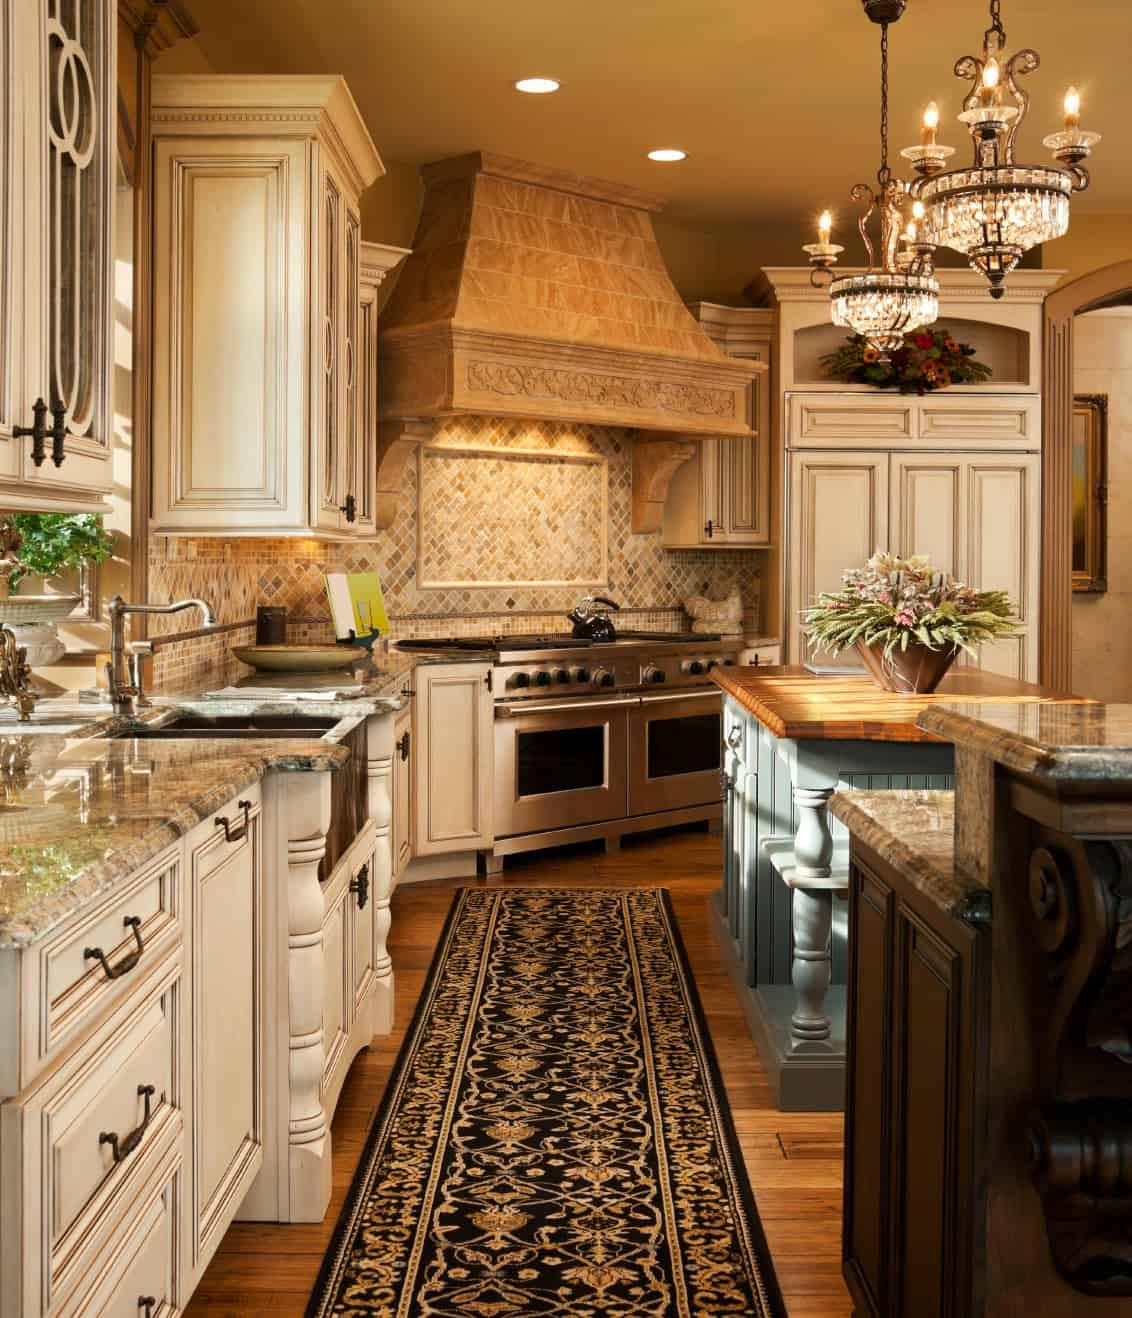 Ambient light from the crystal chandeliers creates a warm and cozy feel in this kitchen with dual islands and white cabinetry flanking a classy black runner that lays on the hardwood flooring.